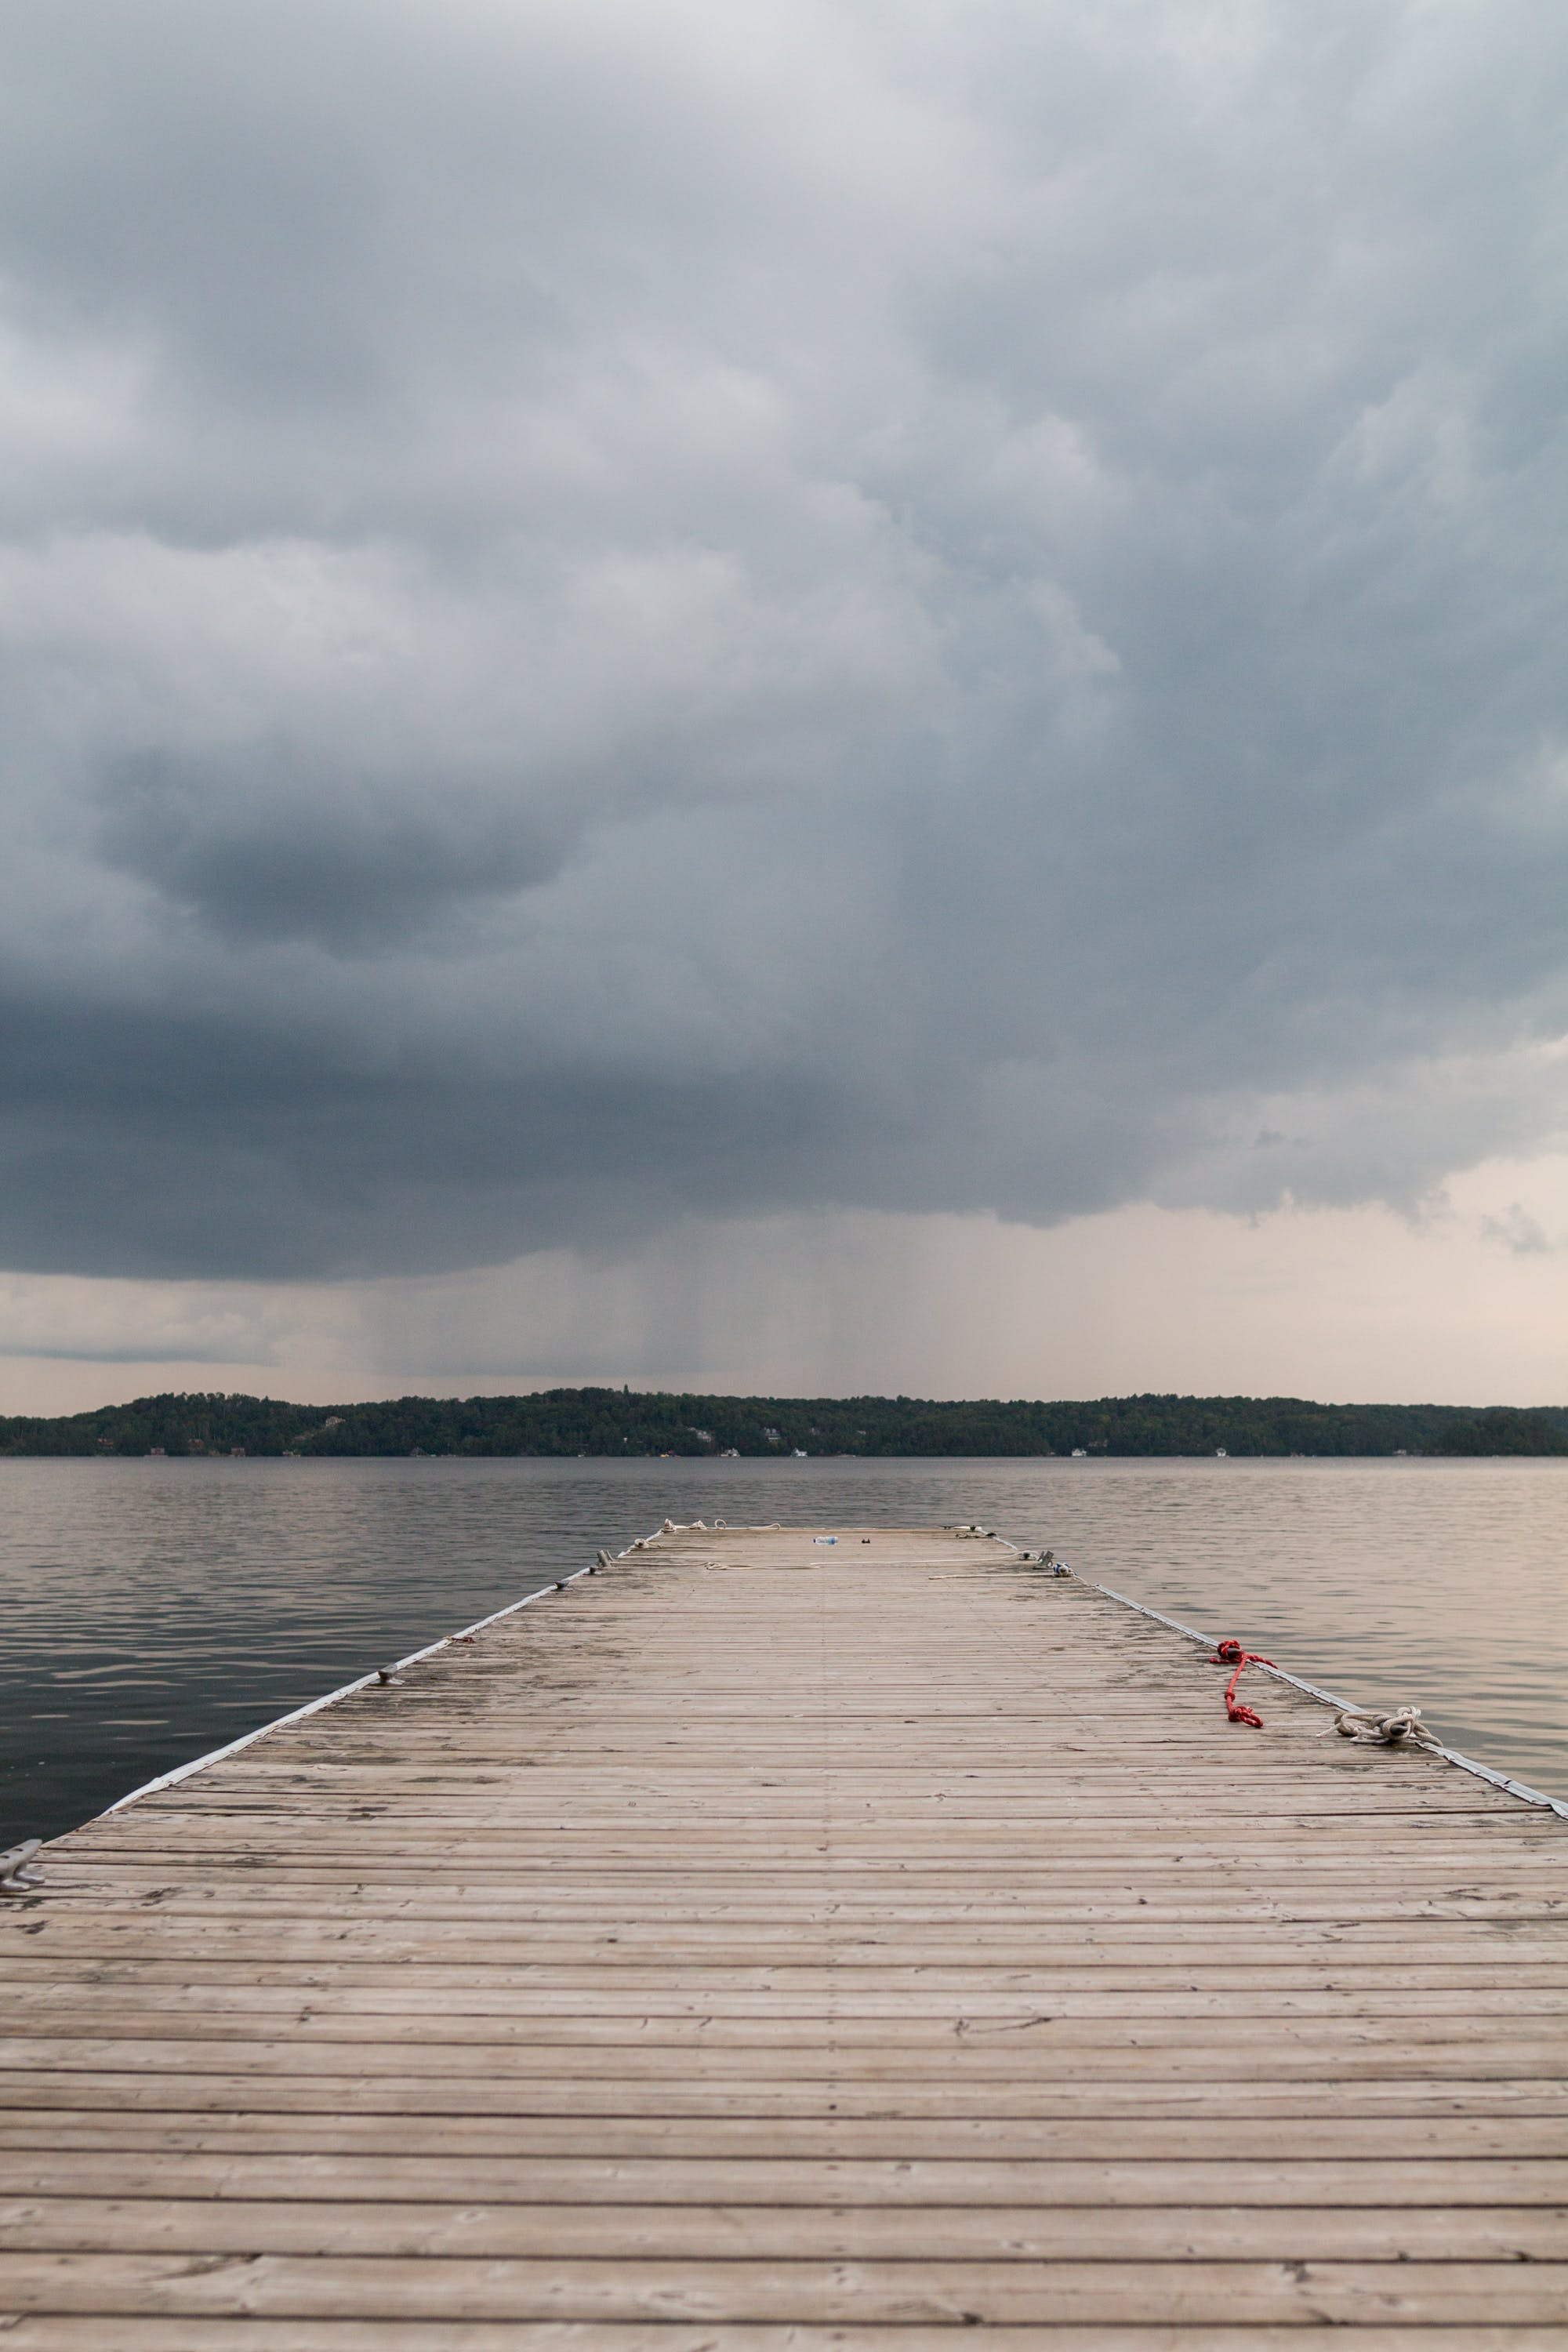 Free stock photo of sky, water, clouds, storm